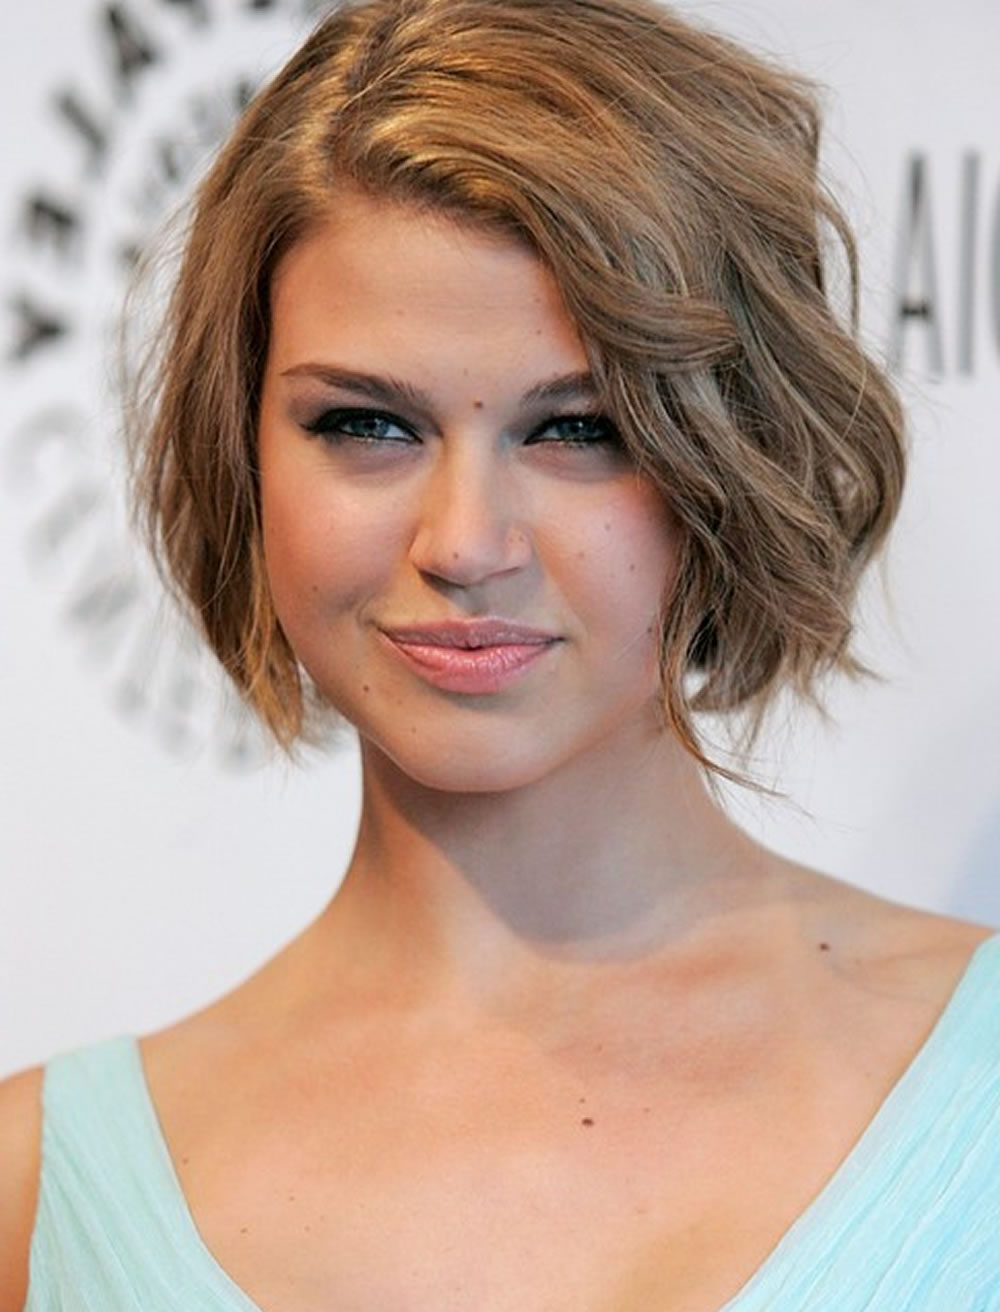 The Best 30 Short Bob Haircuts – 2018 Short Hairstyles For Women Regarding Short Haircuts For Oval Faces (View 18 of 25)